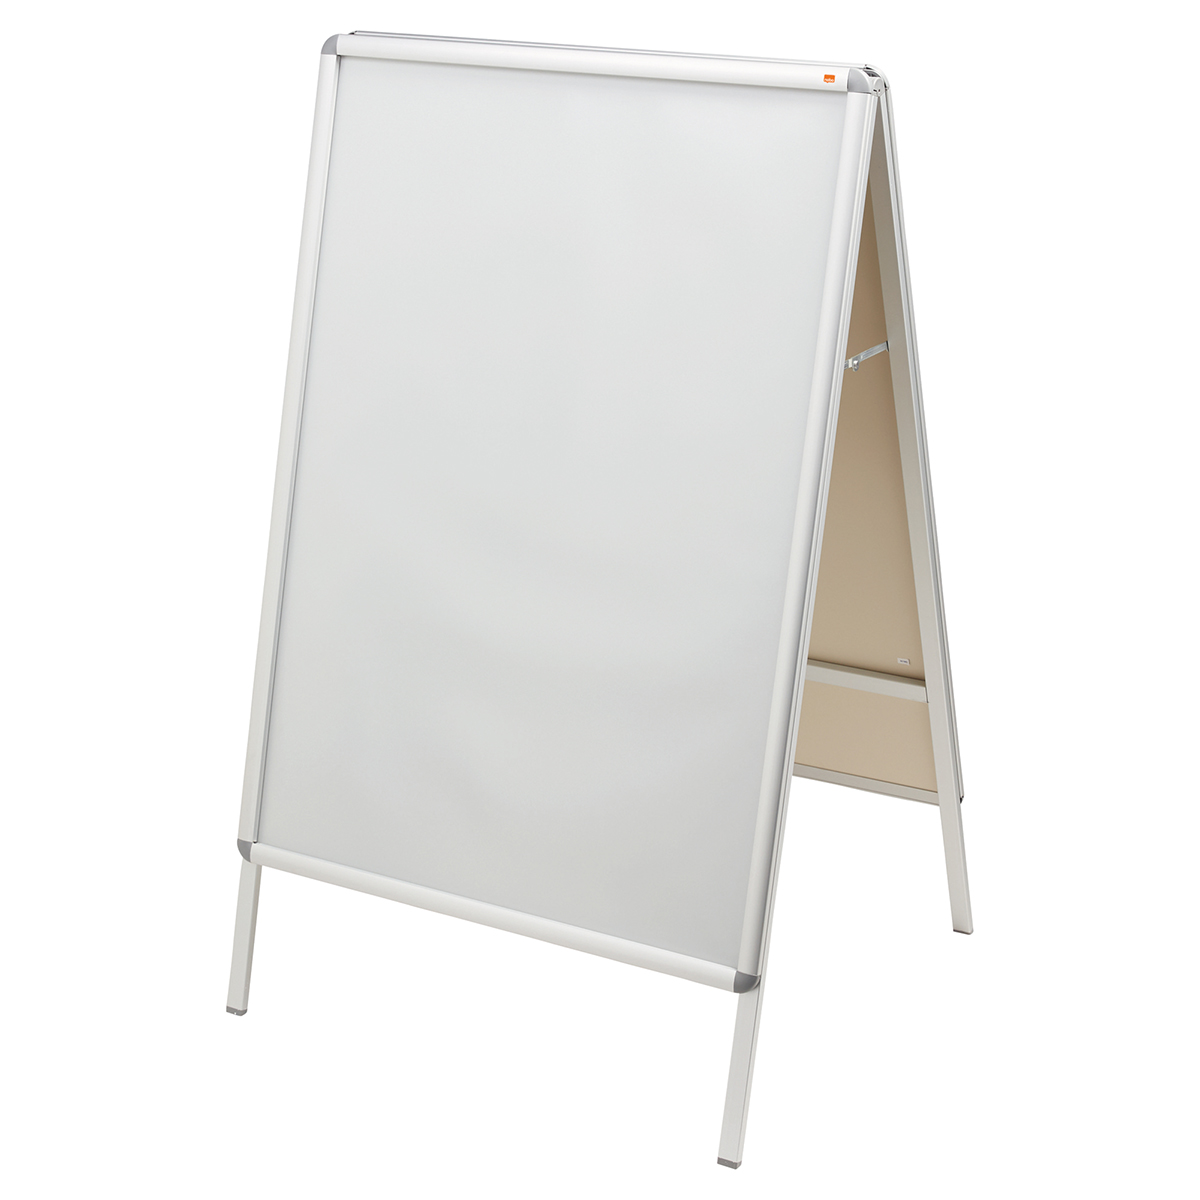 Nobo 1902204 A0 A-Board Clip Frame Poster Display